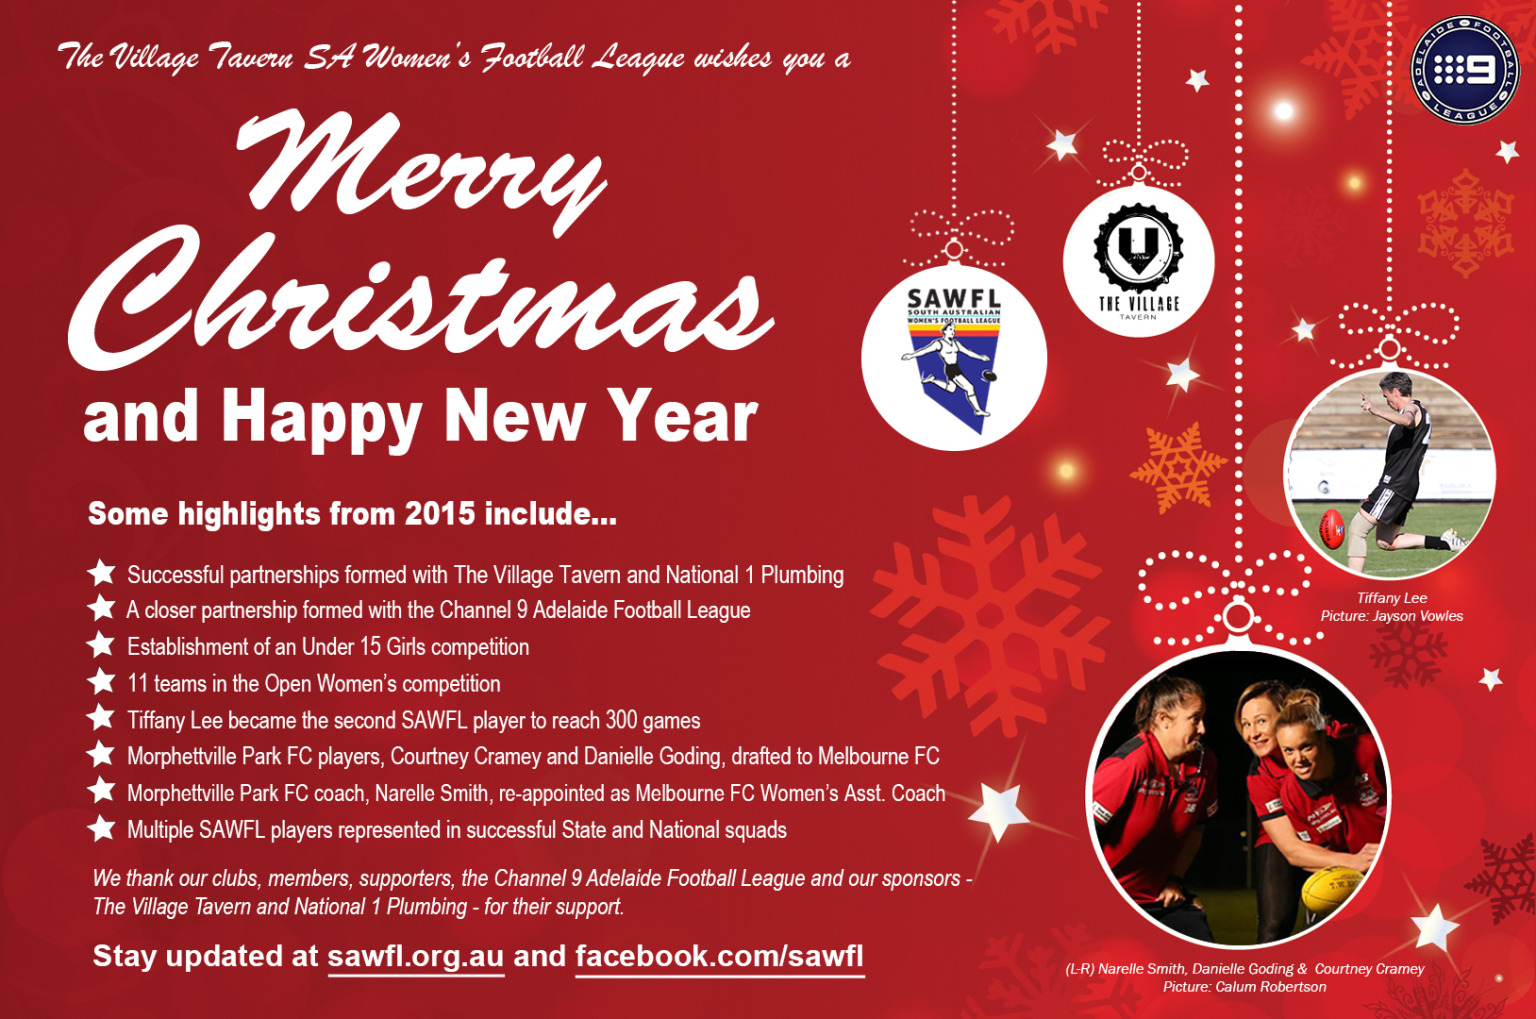 Merry Christmas Happy New Year From The Village Tavern Sa Women S